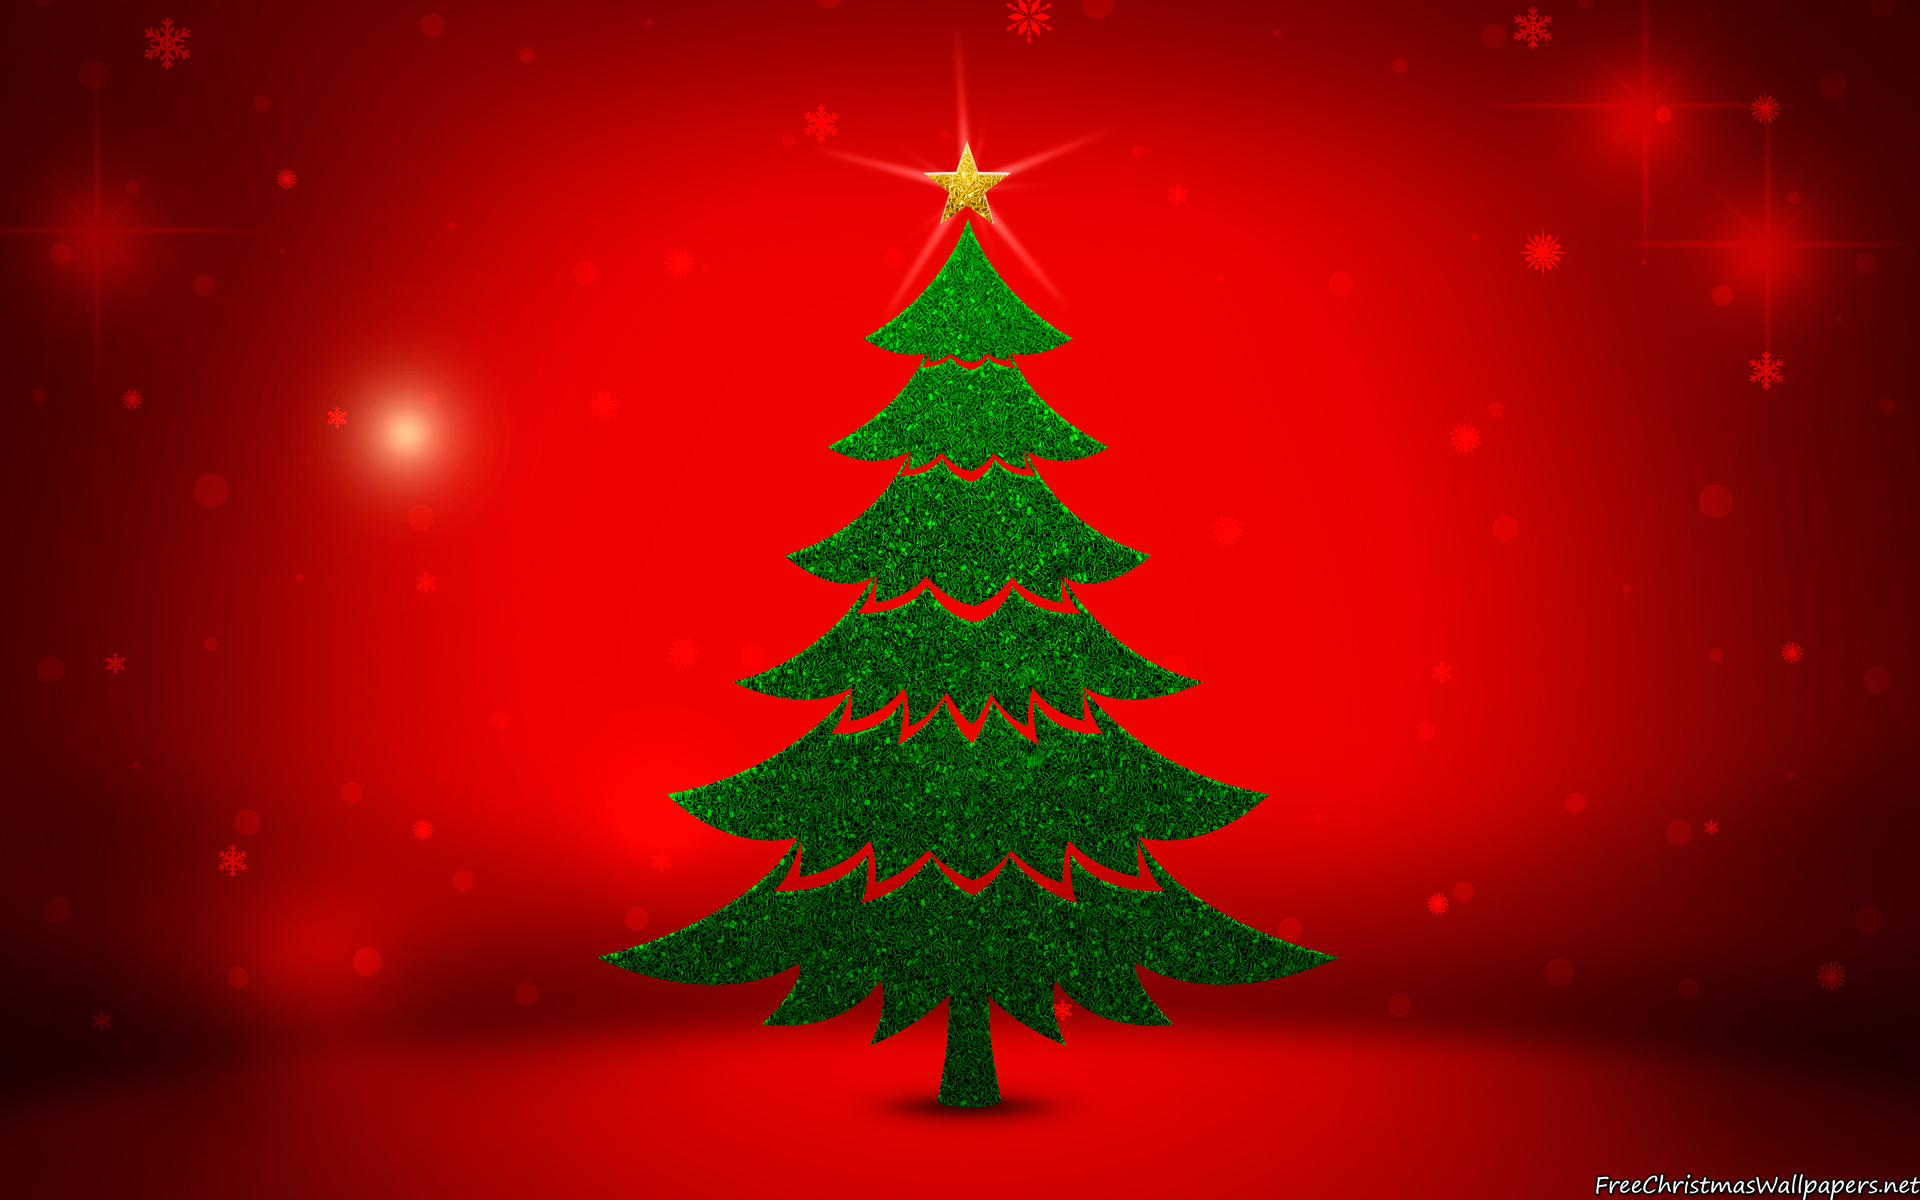 Download Christmas Tree Background 1024x768 | 1366x768 | 1920x1080 | 1920x1200